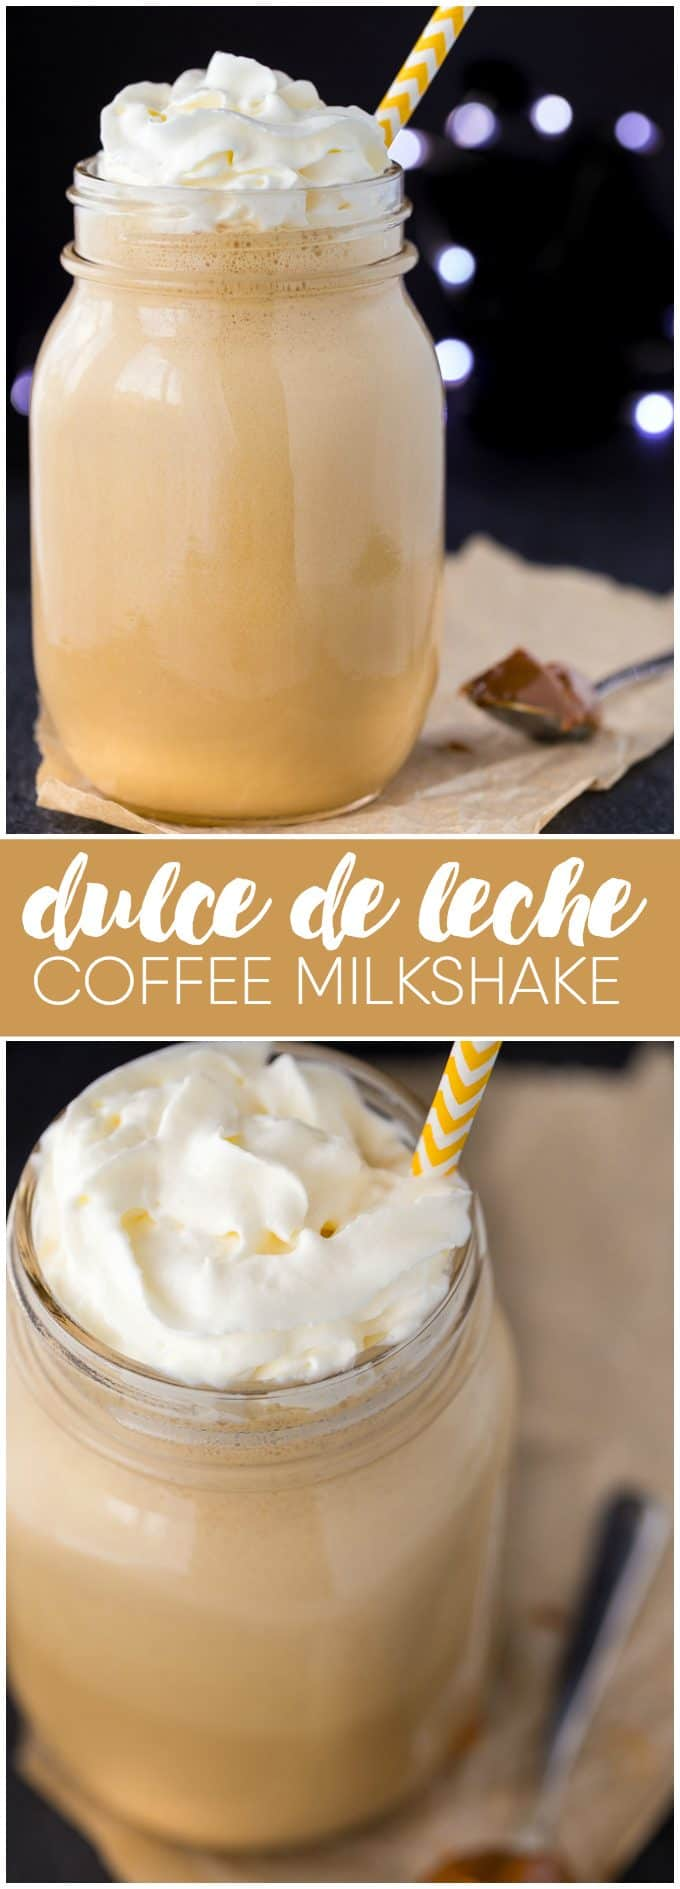 Dulce de Leche Coffee Milkshake - Satisfy your coffee cravings AND beat the heat! This sweet, creamy and smooth drink goes down so easy.